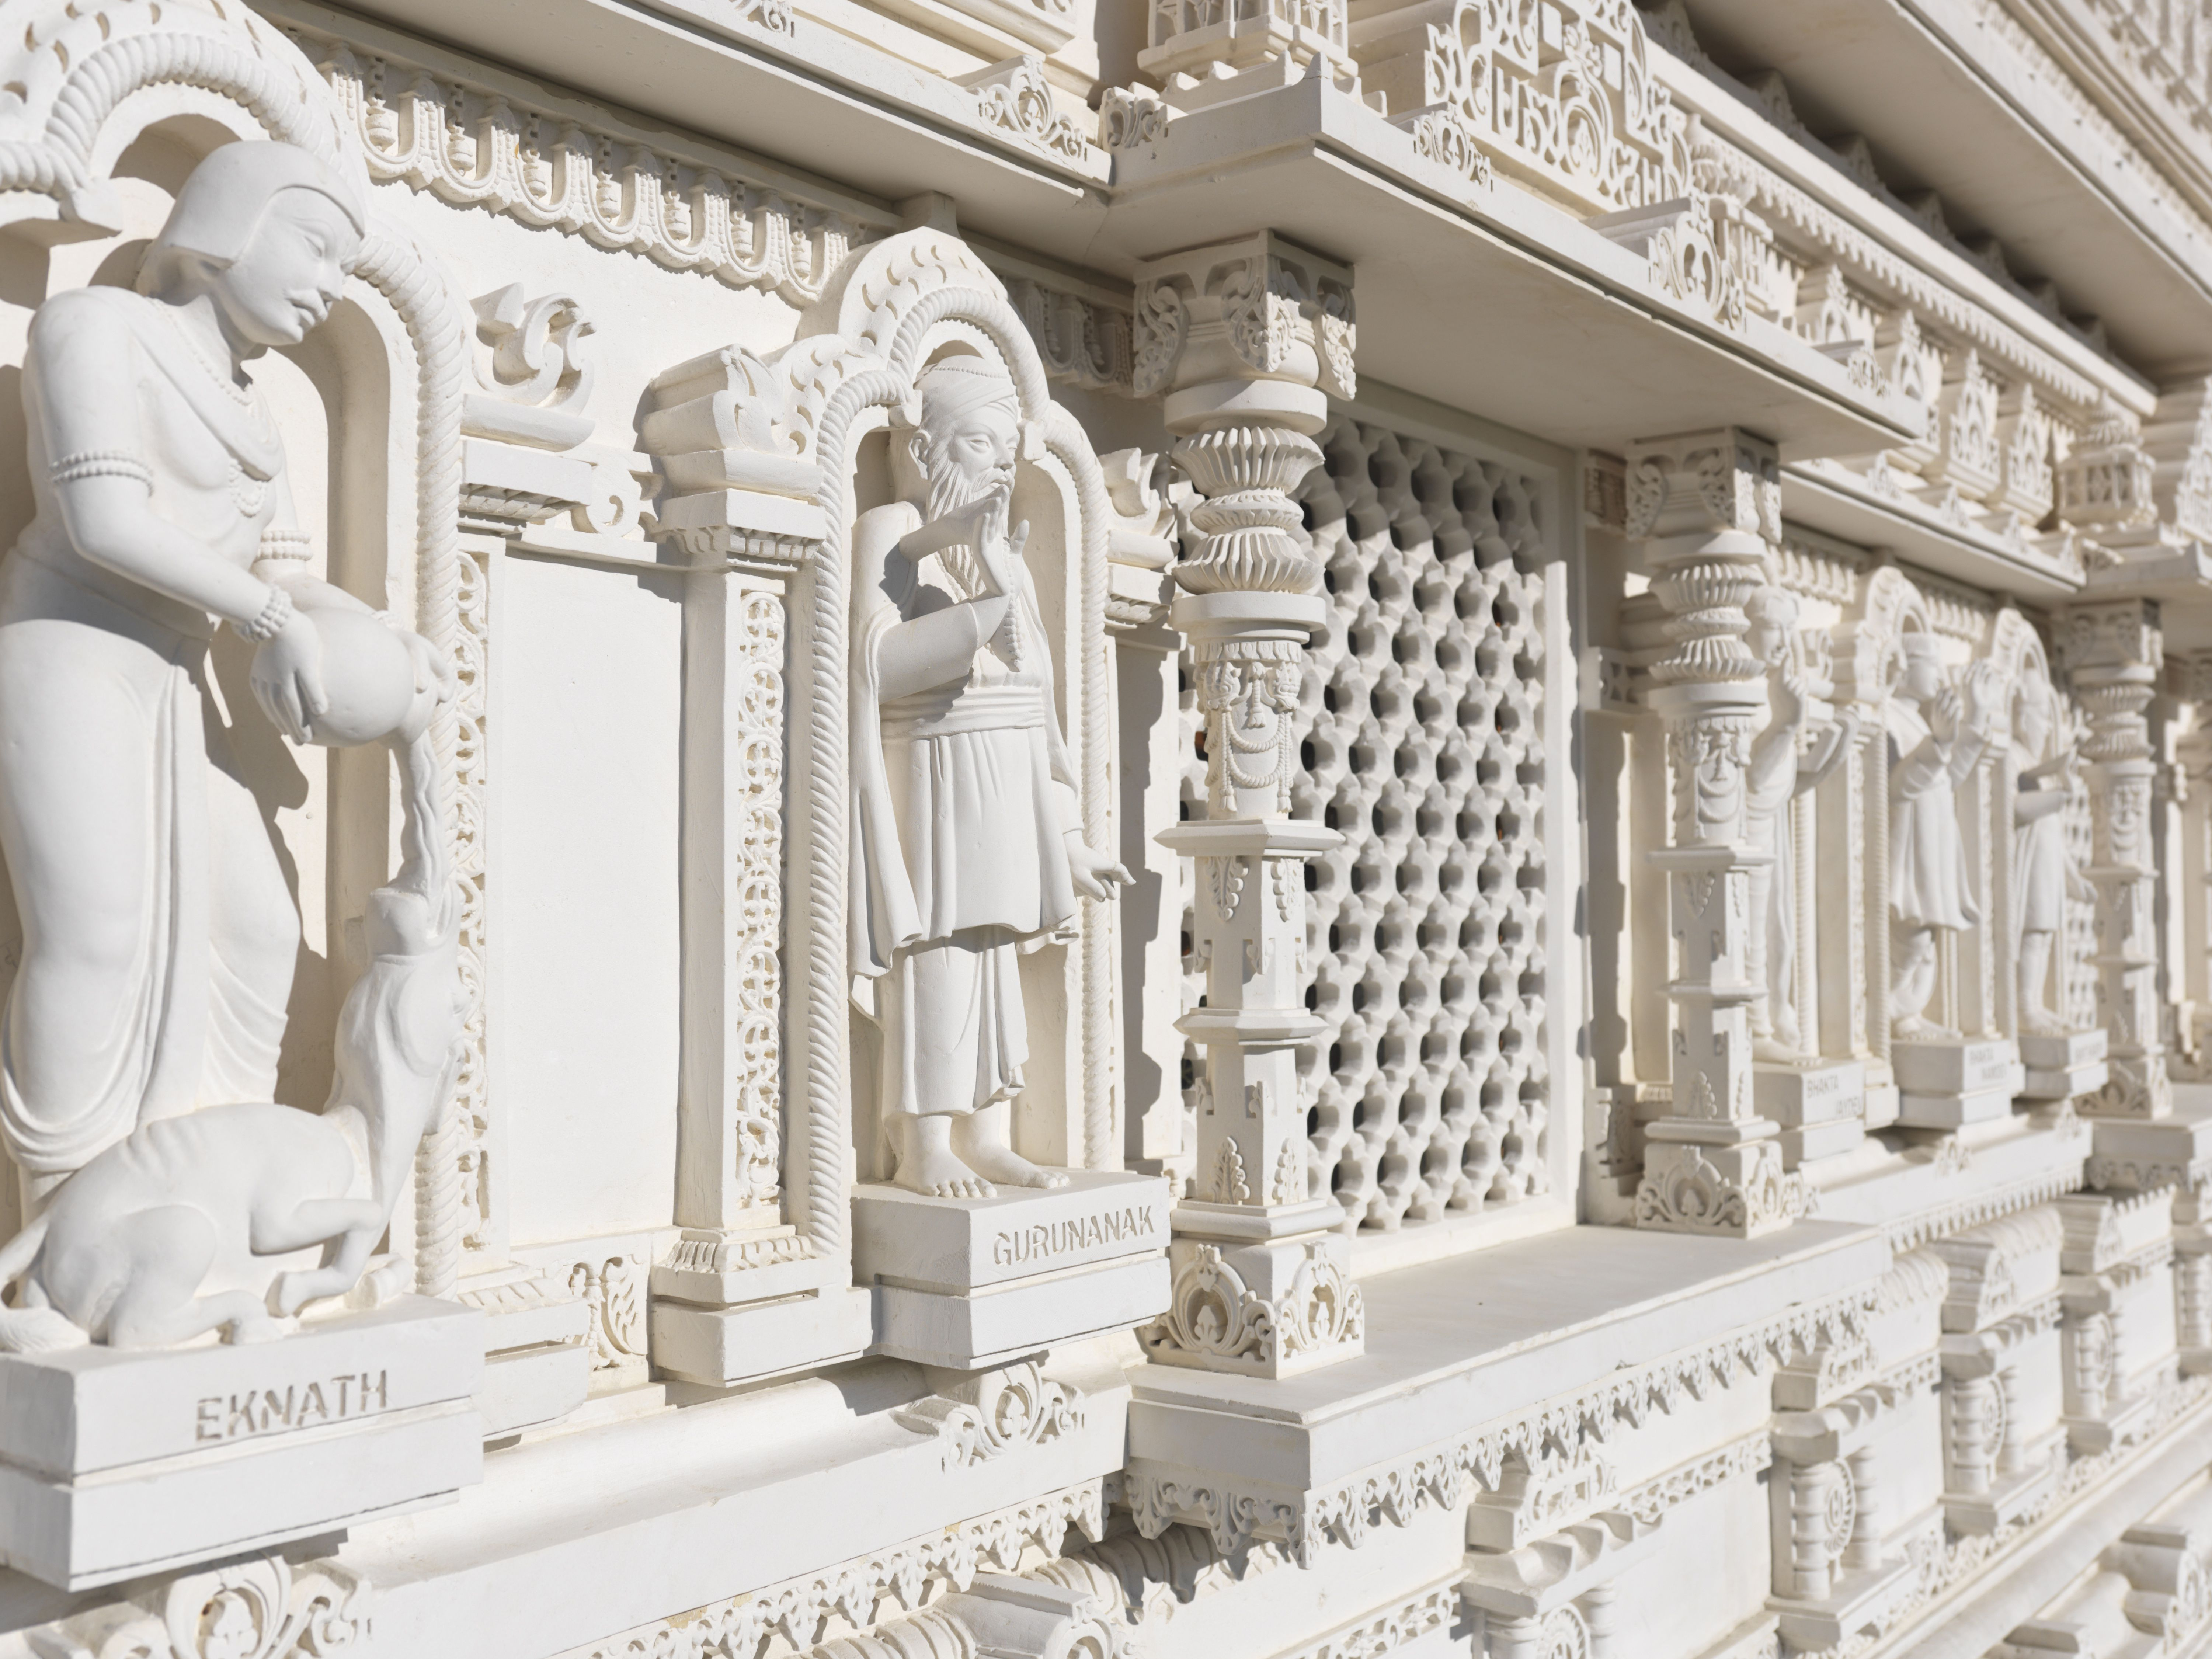 What is the origin of the swastika understanding the meaning of the nazi black sun symbol the swaminarayan mandir hand carved white marble hindu temple eknath and gurunanak carvings buycottarizona